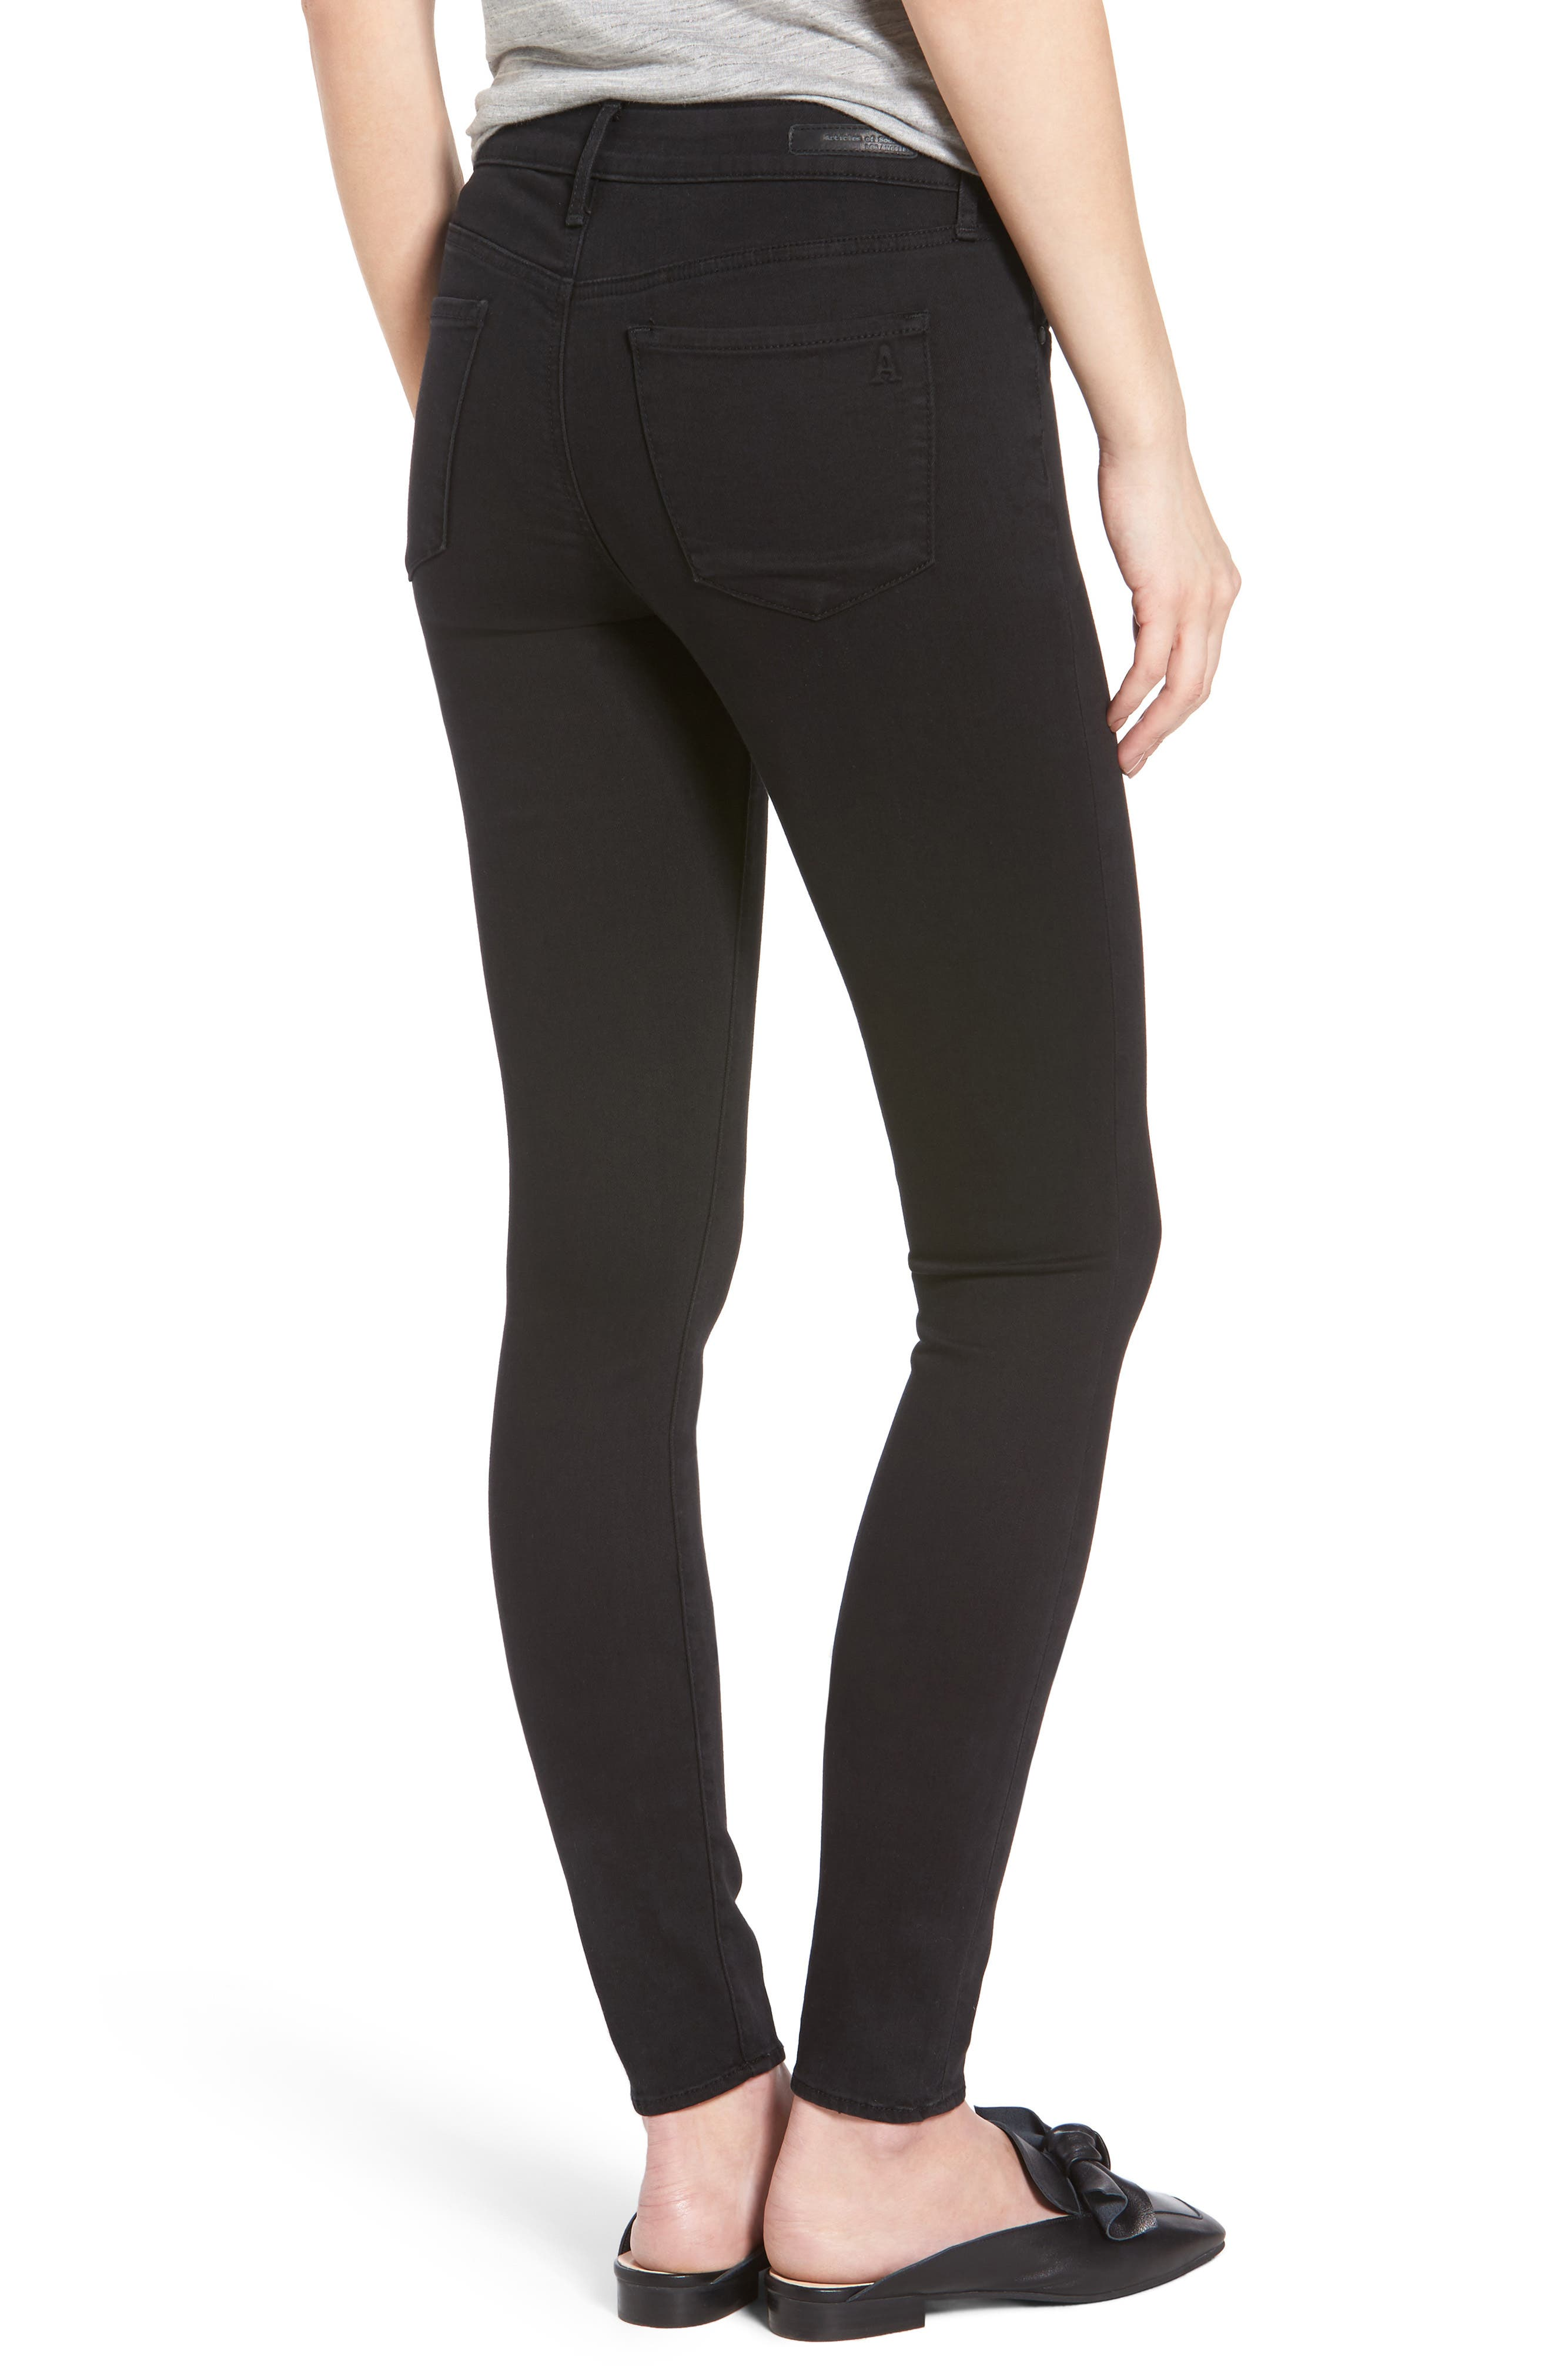 Mya Ankle Skinny Jeans,                             Alternate thumbnail 2, color,                             008